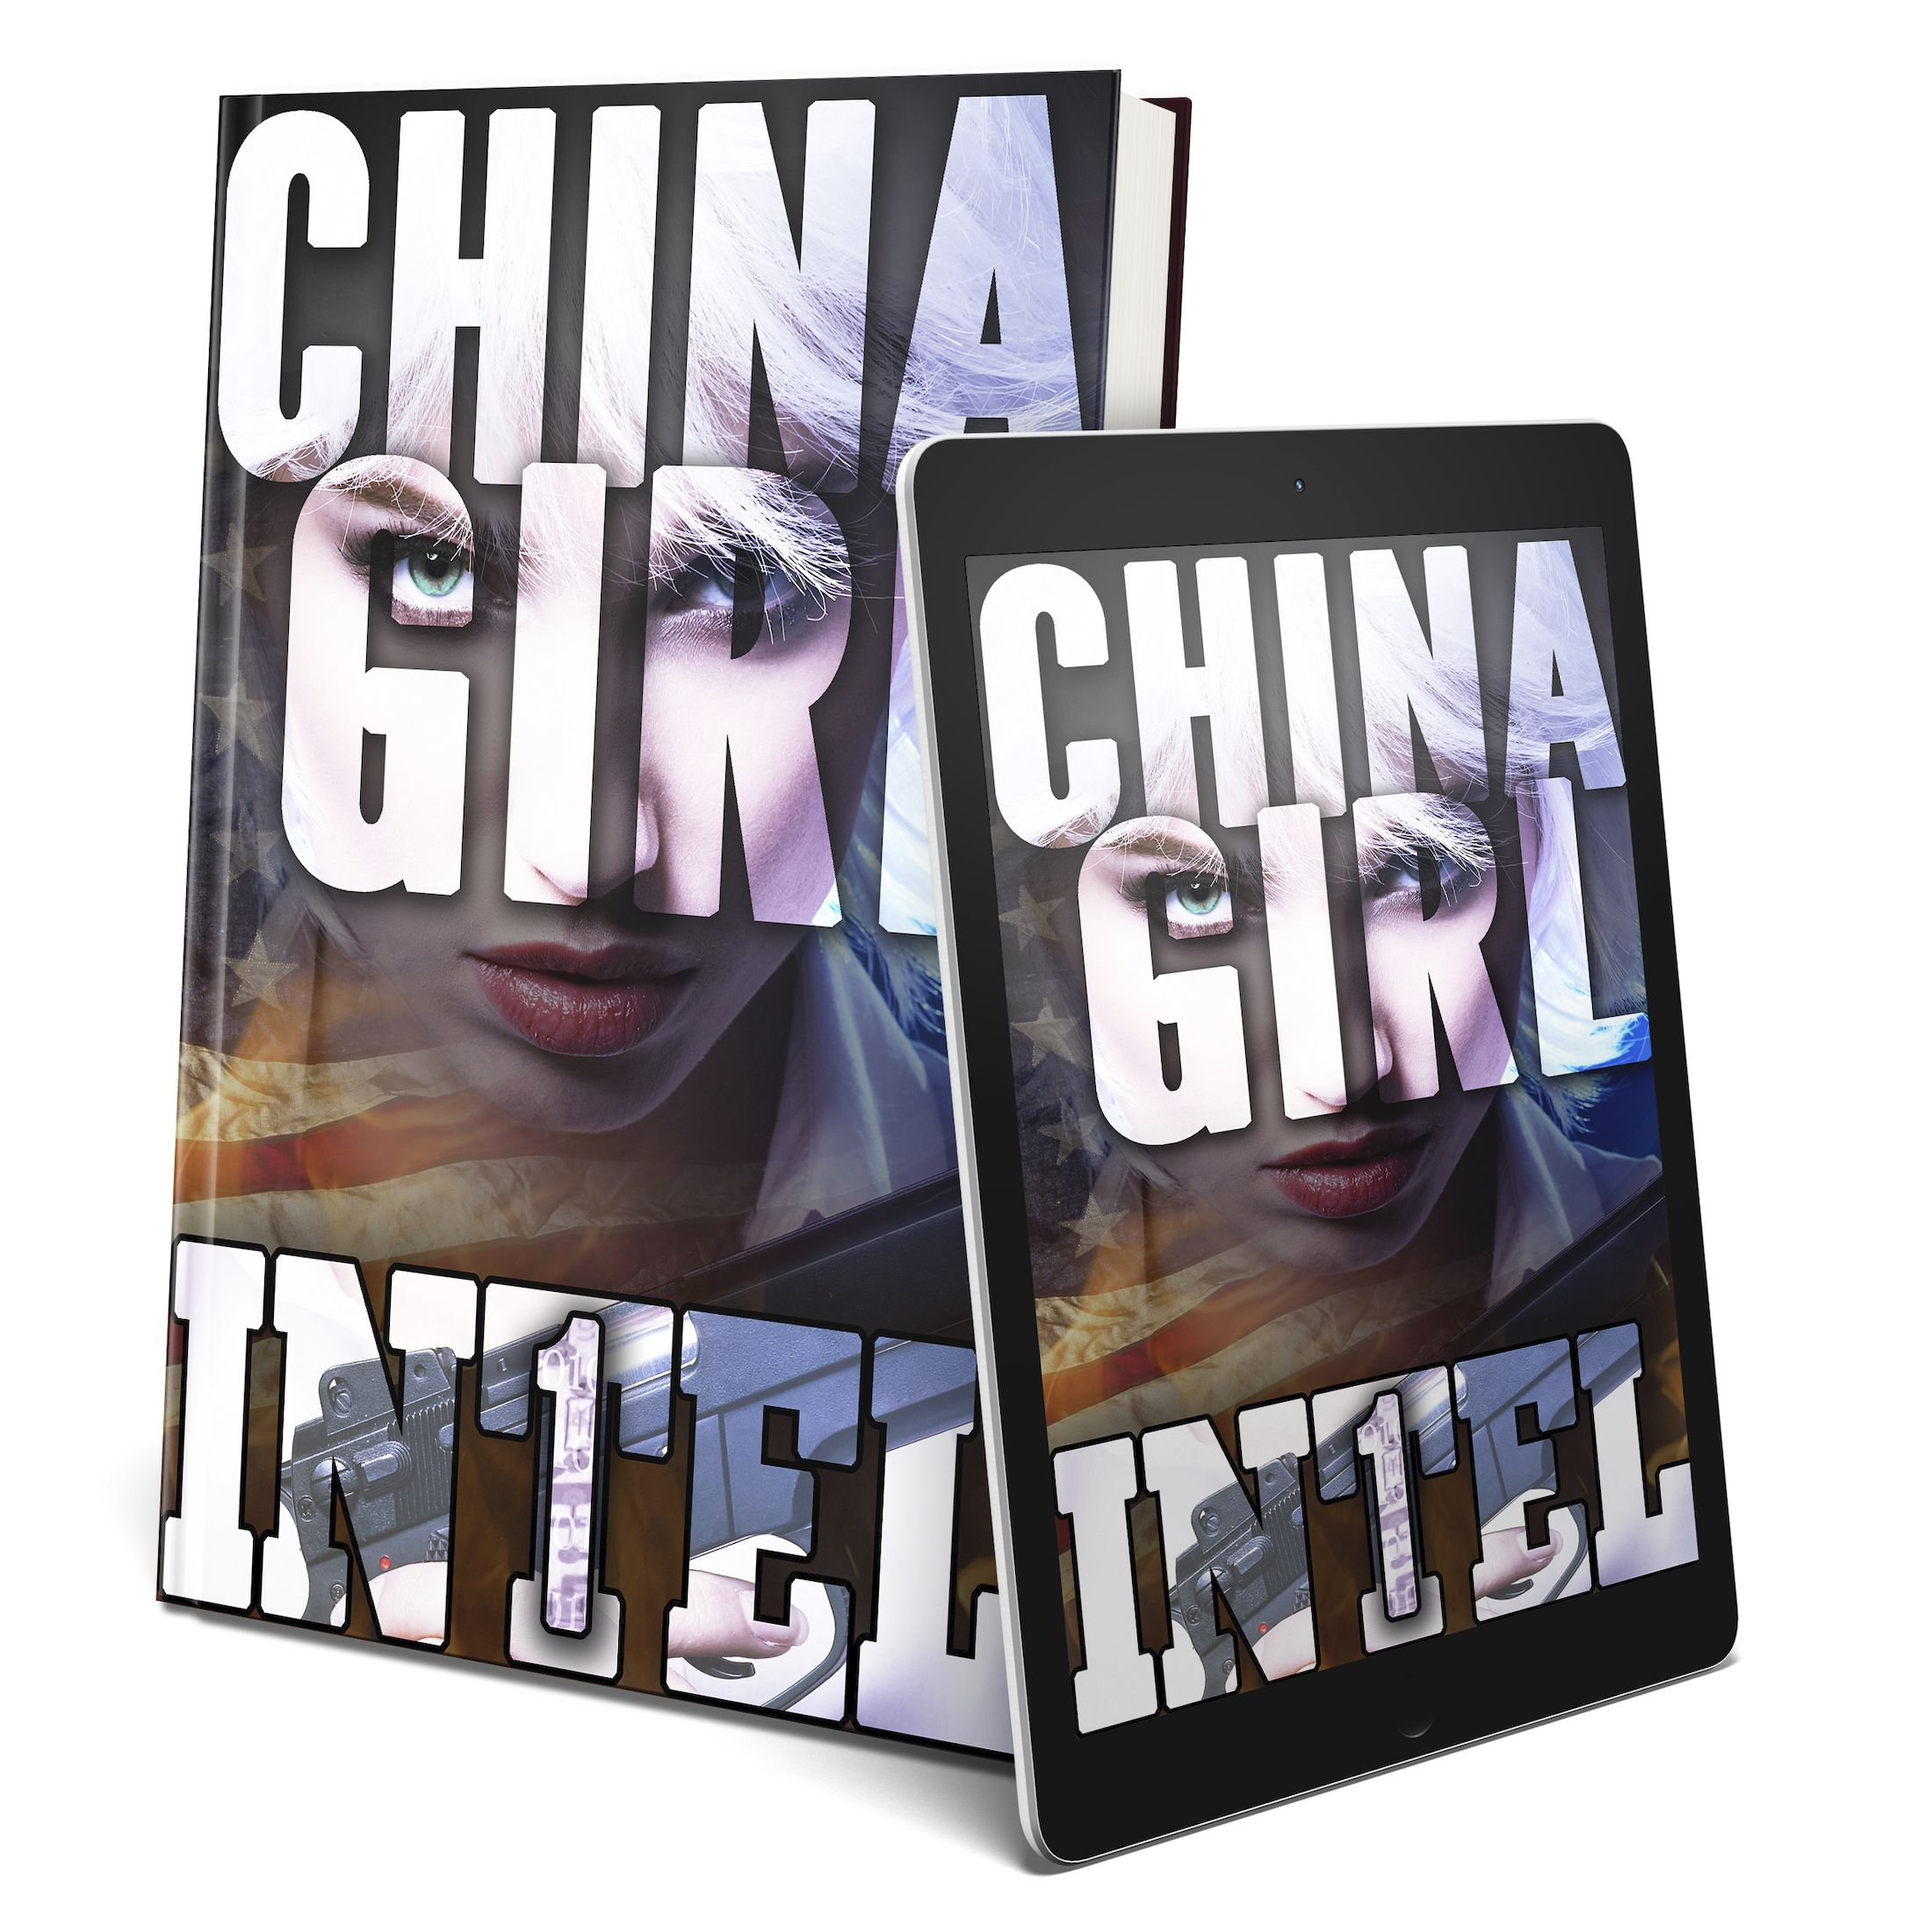 China Girl, released broadly in audio, digital, and paperback formats.